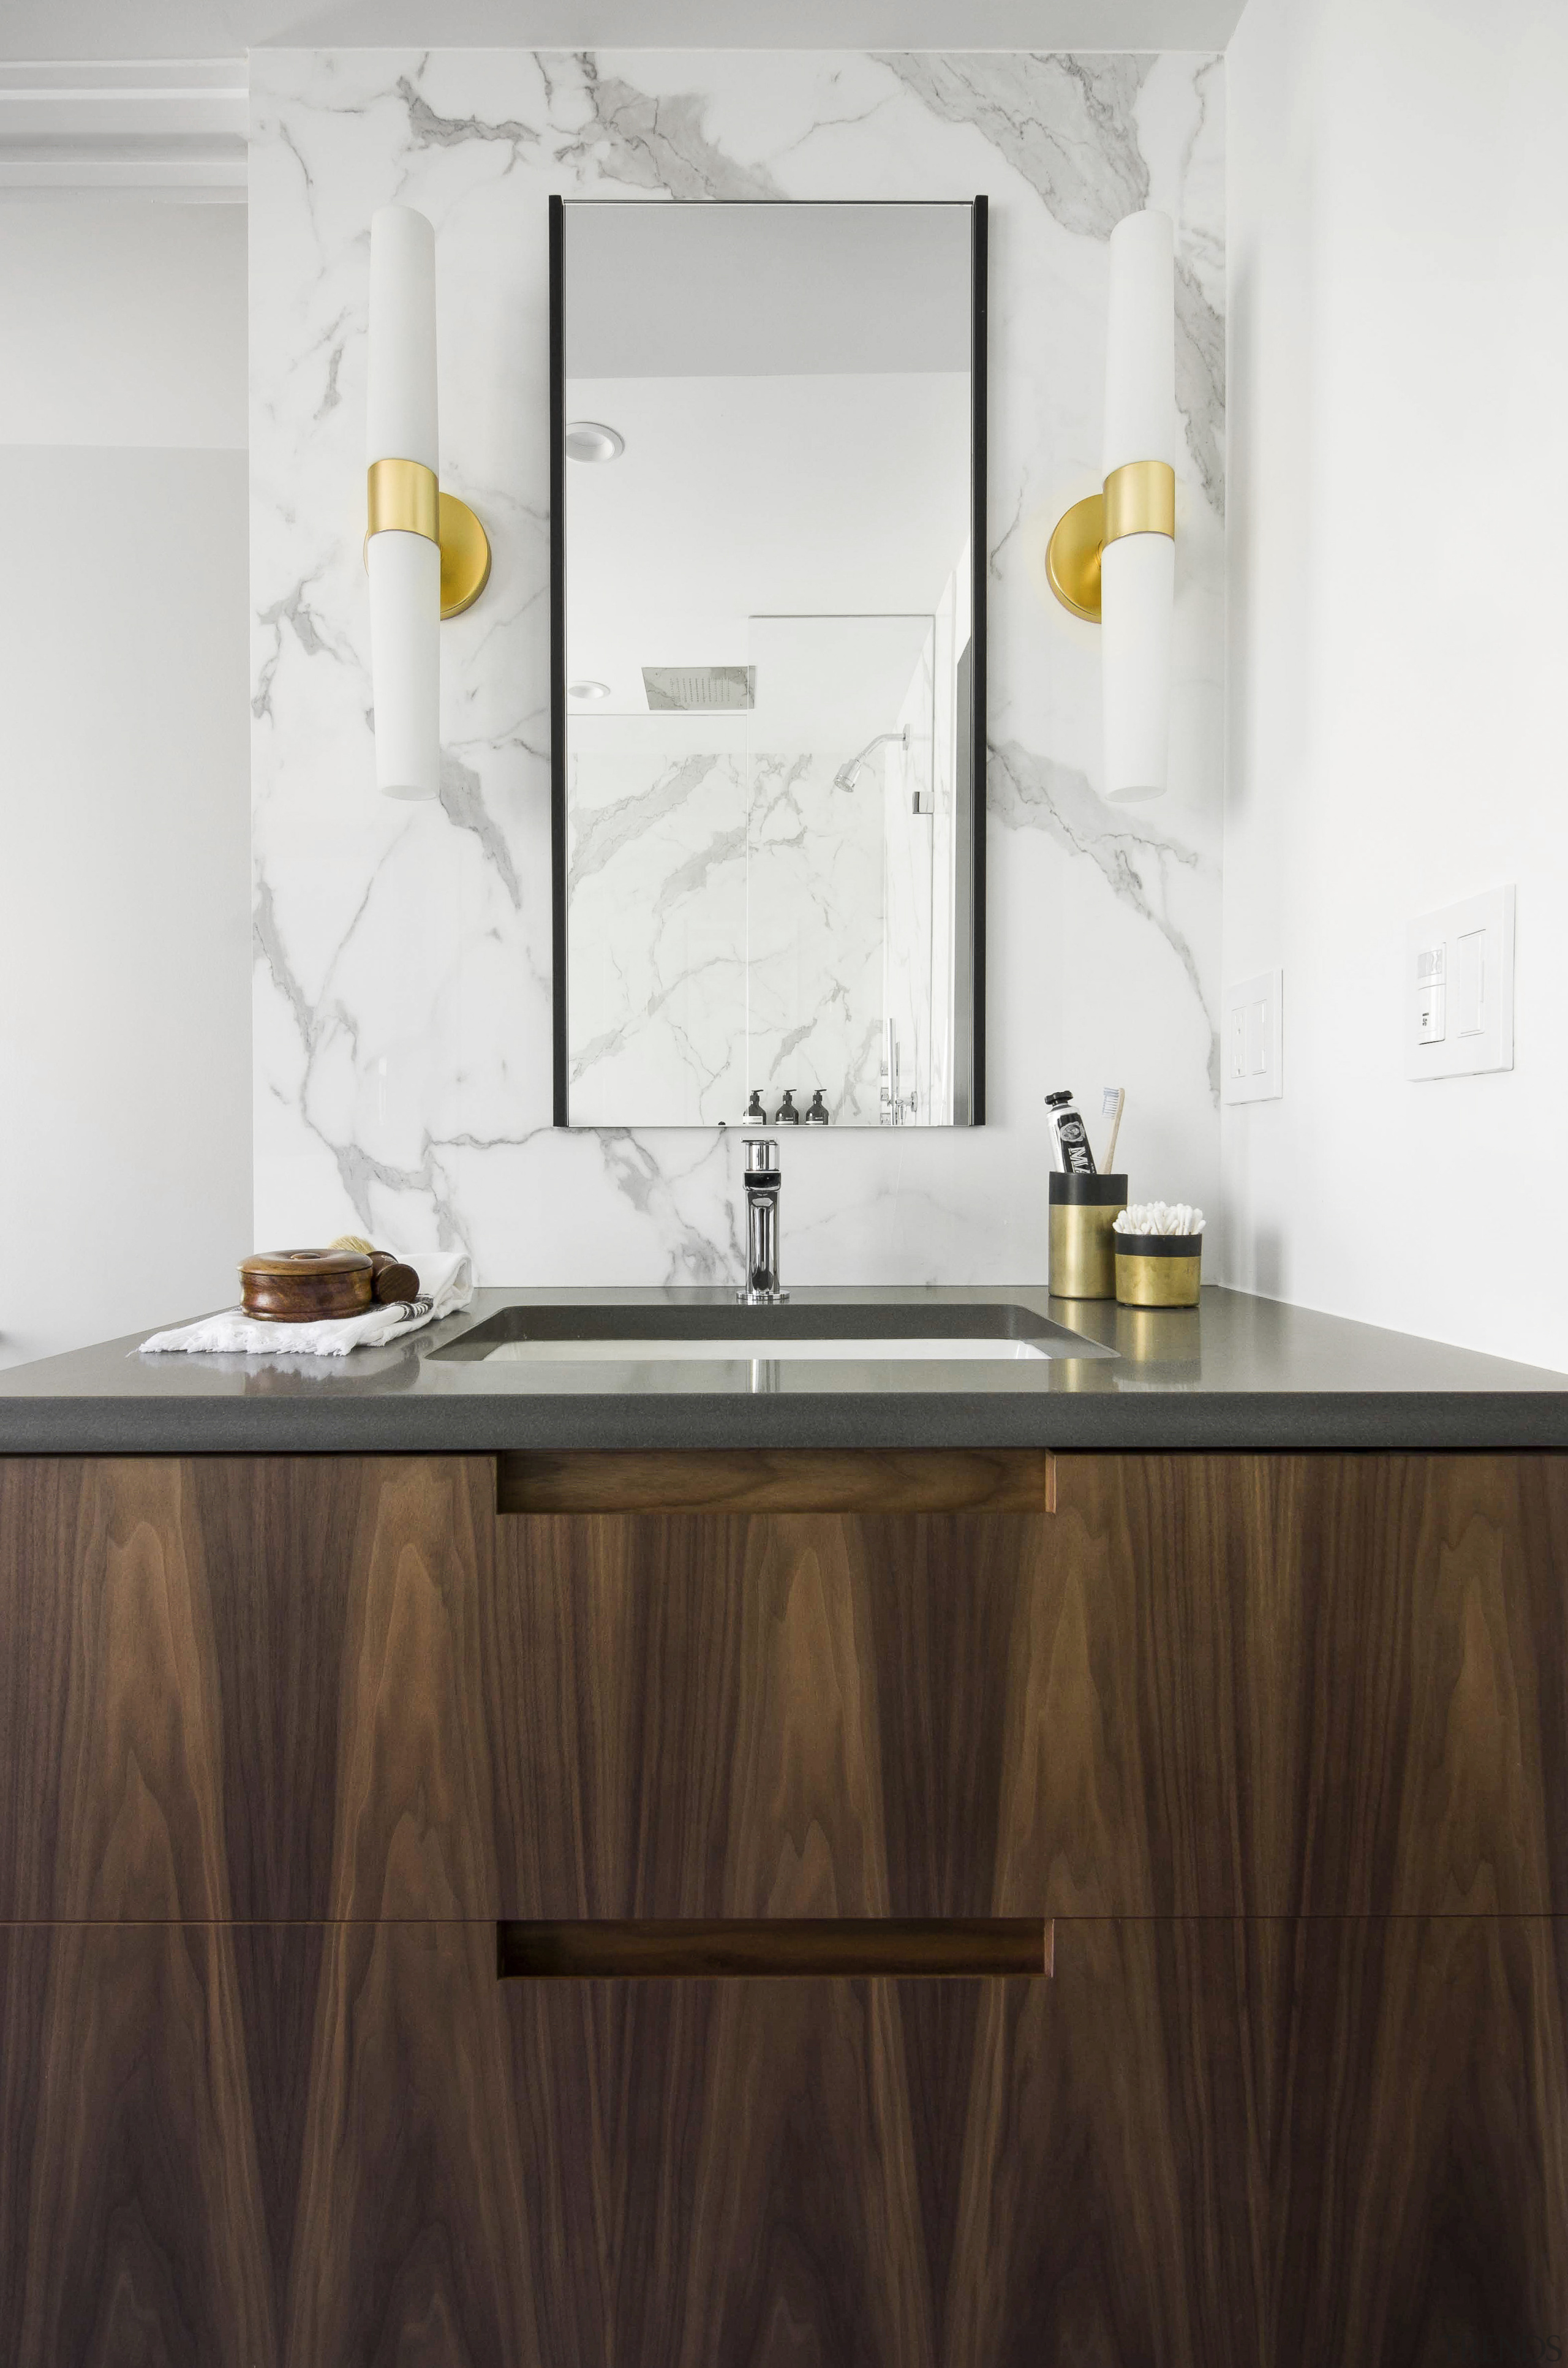 The custom walnut his and her vanities feature